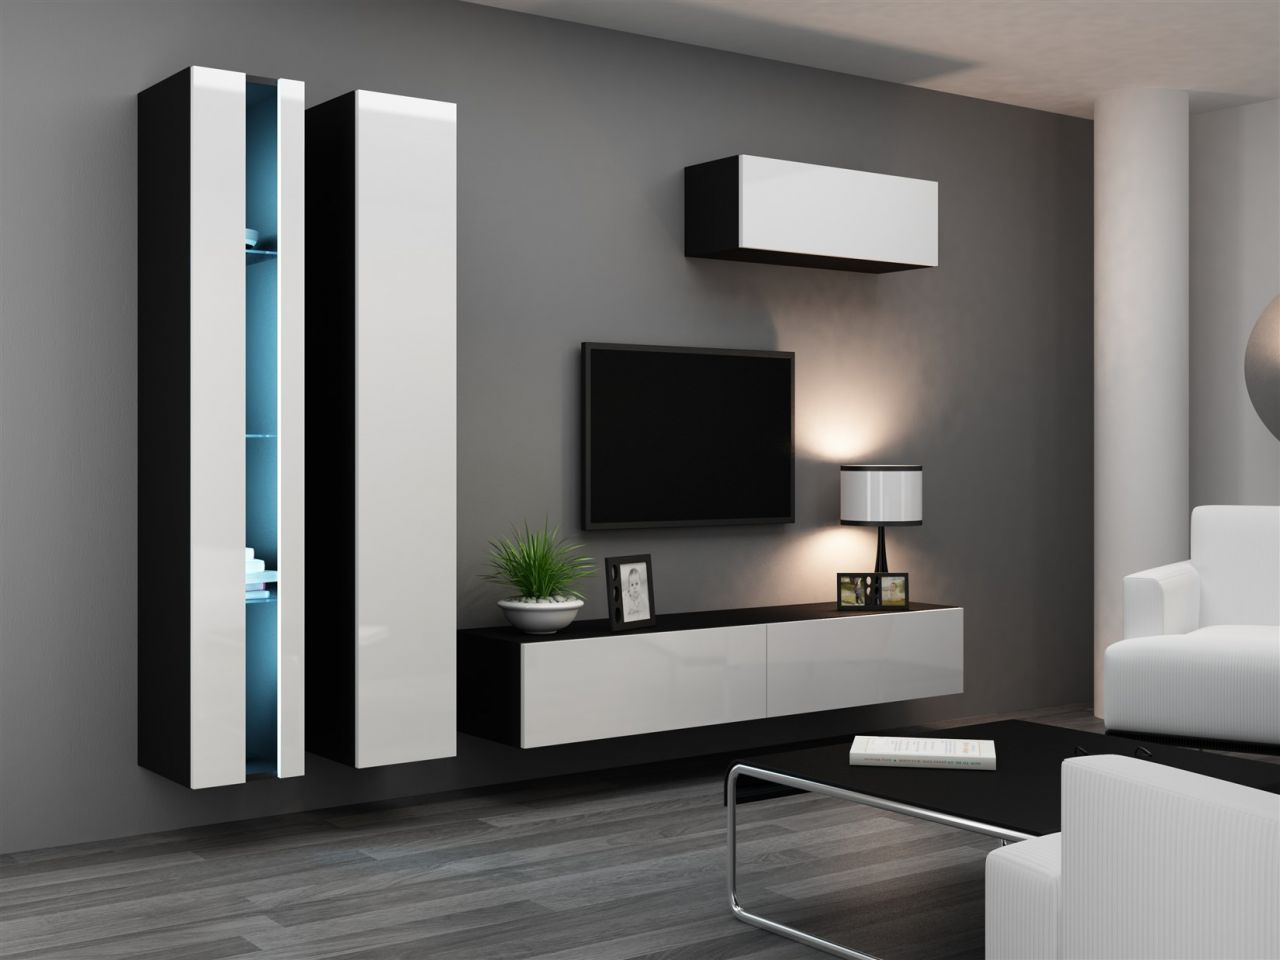 mediawand wohnwand 4 tlg sentic 1 schwarz weiss. Black Bedroom Furniture Sets. Home Design Ideas